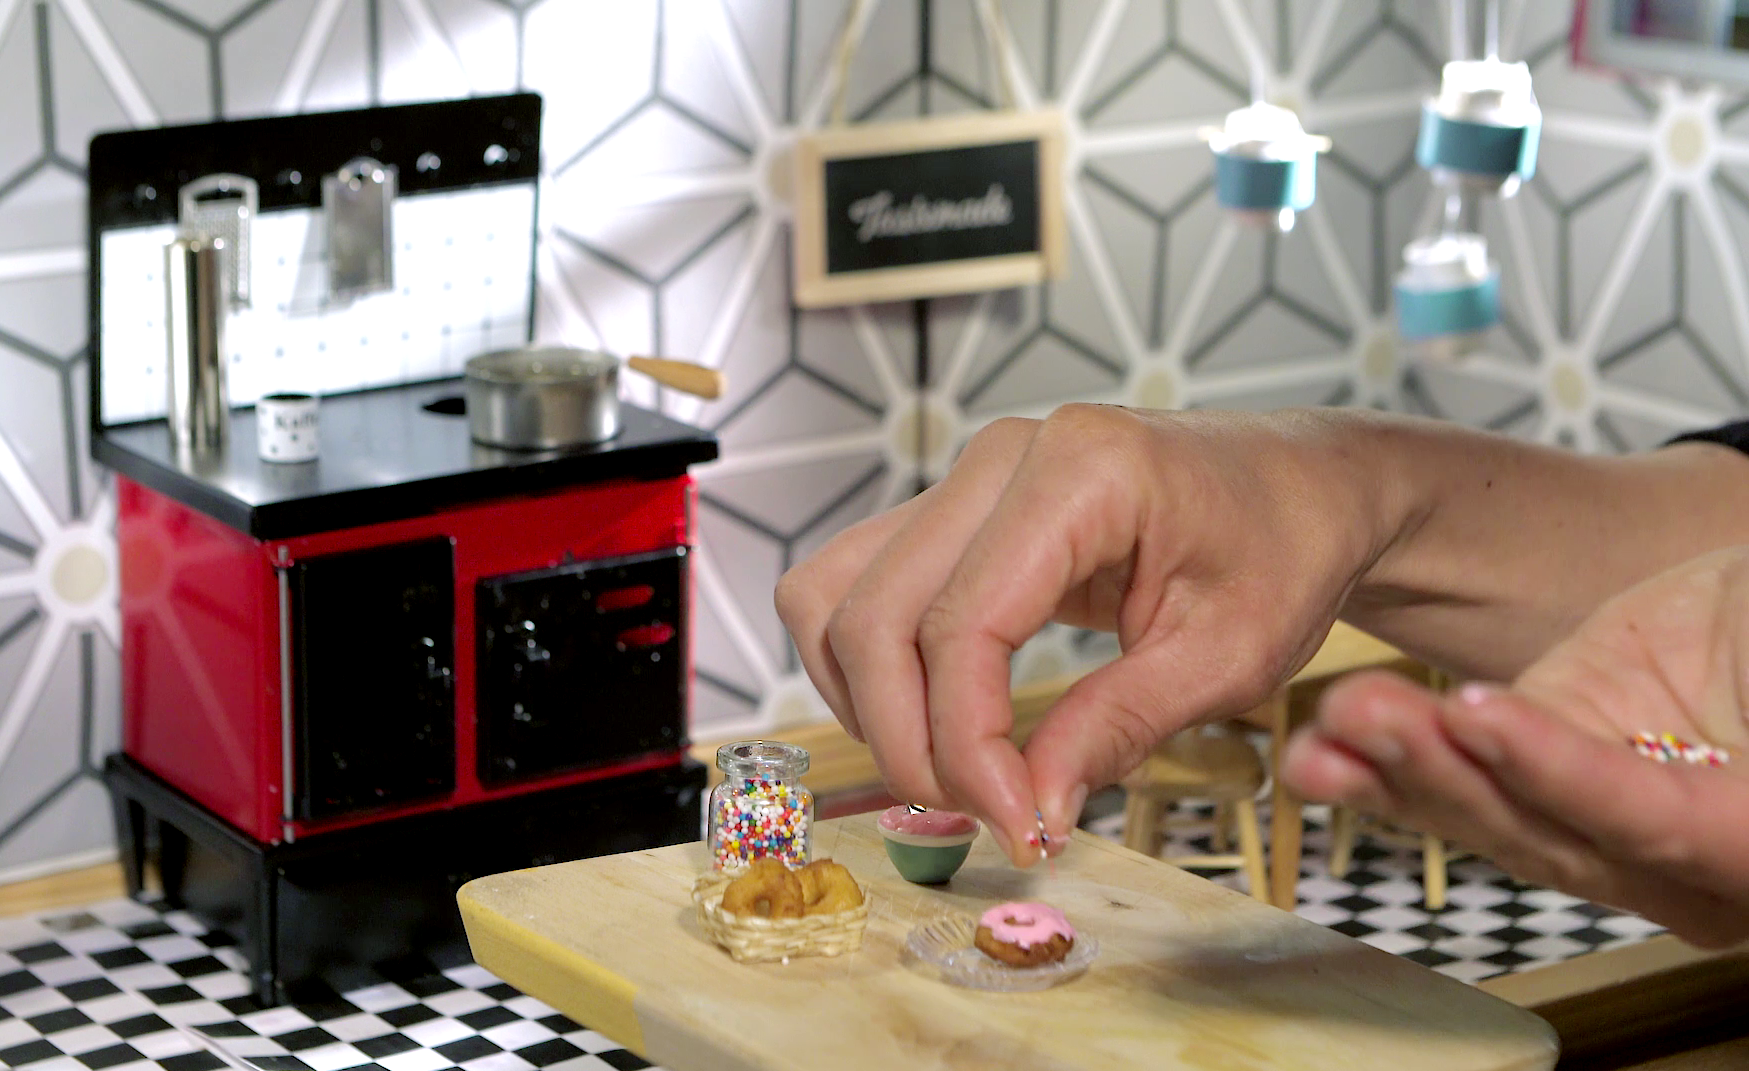 Tiny kitchen videos cook up real food in doll sized portions knkx